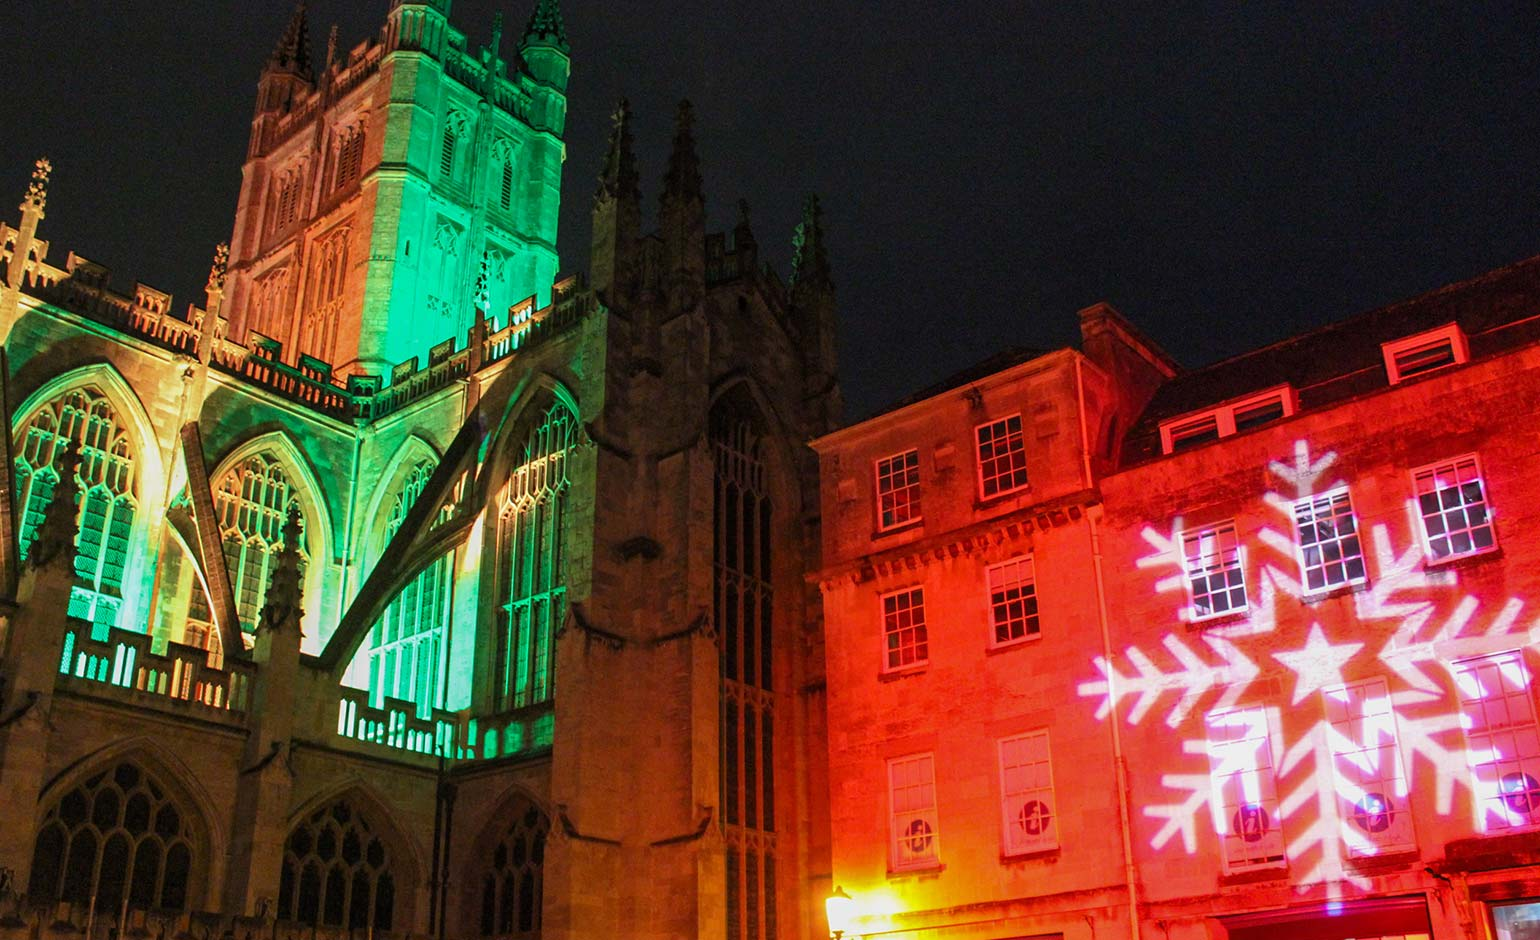 Bath BID illuminates iconic streets and buildings across city for Christmas